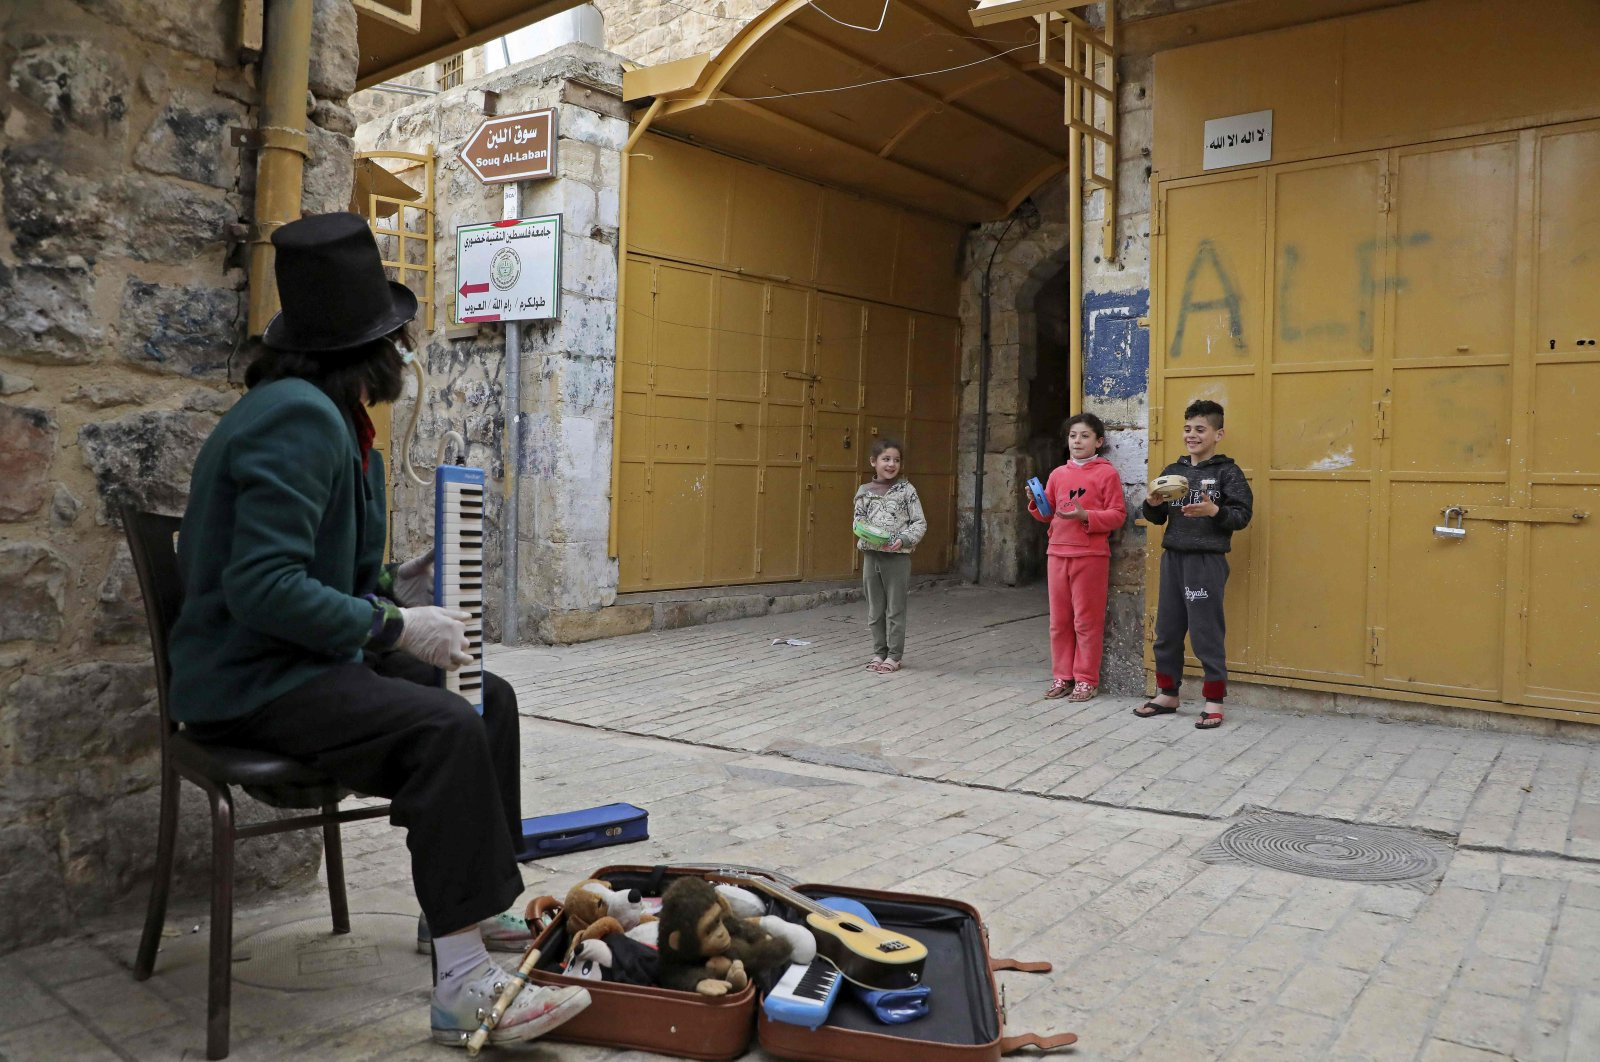 A Palestinian artist, dressed as a clown, plays music near Palestinian children in the divided West Bank town of Hebron, Tuesday, March 31, 2020. (AFP Photo)